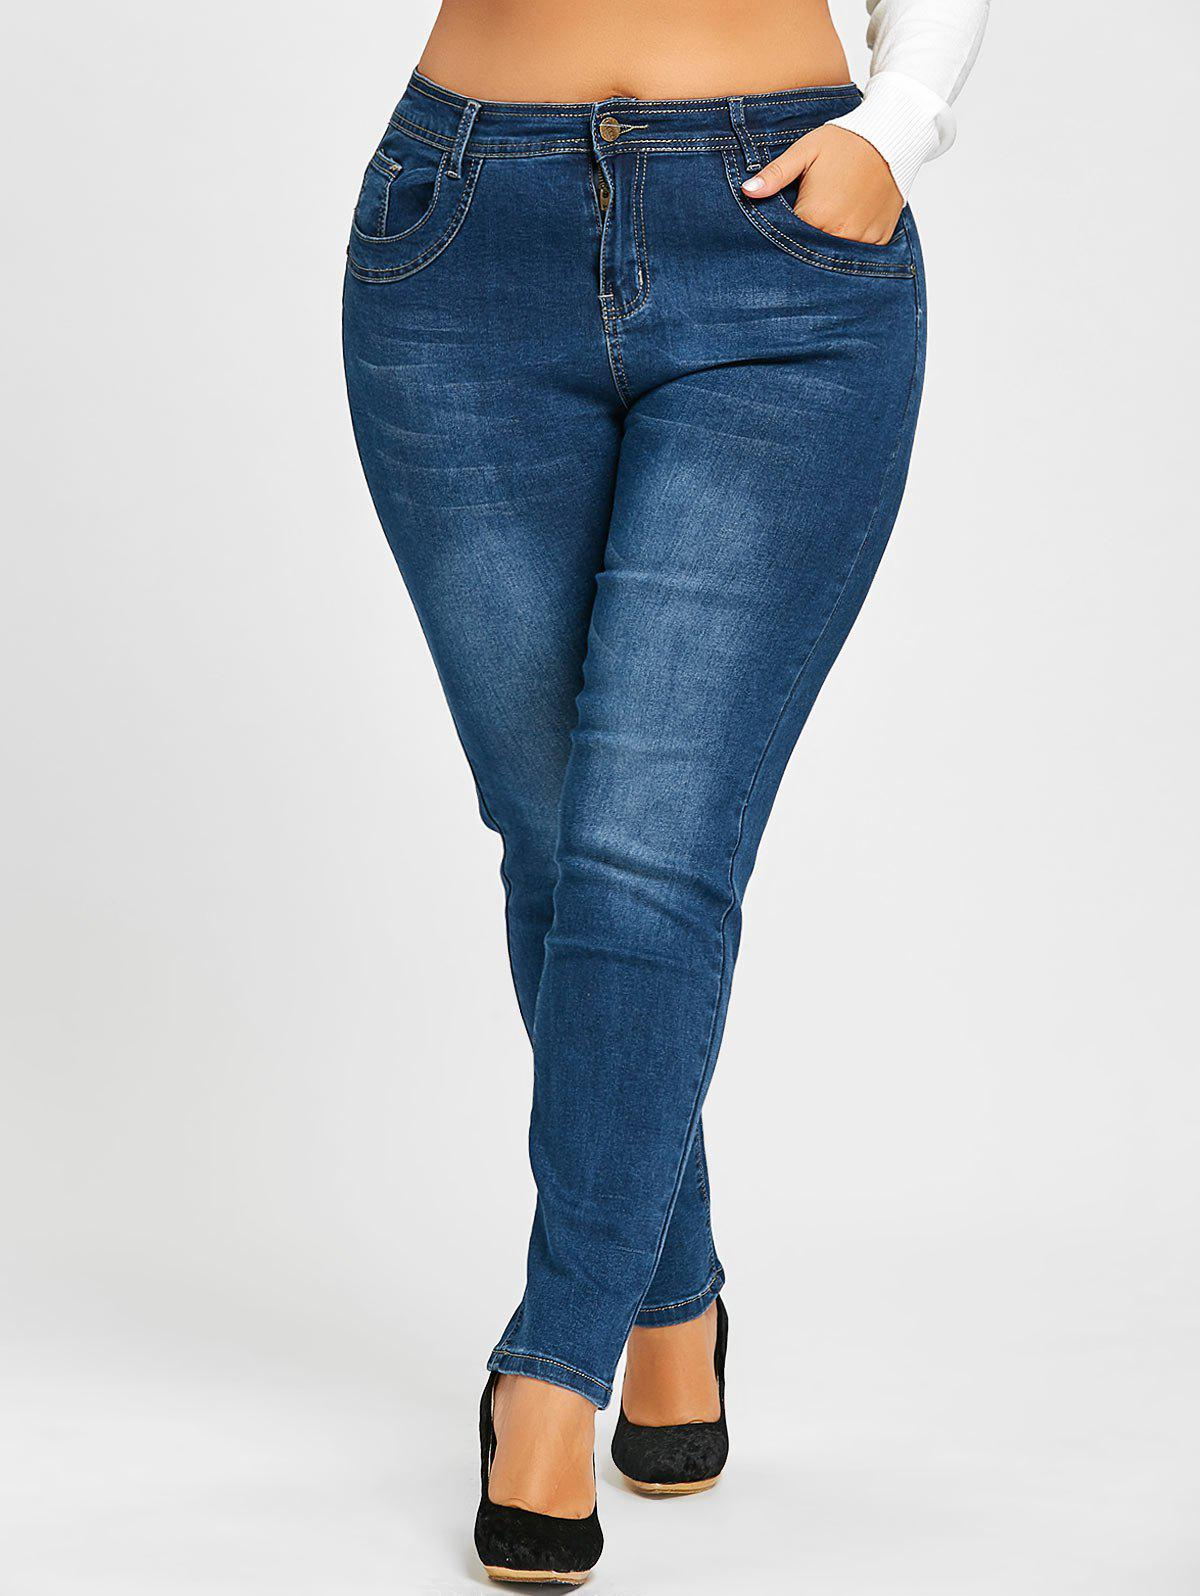 Plus Size Bleach Washed Stretch JeansWOMEN<br><br>Size: 2XL; Color: BLUE; Style: Fashion; Length: Normal; Material: Jeans; Fabric Type: Denim; Fit Type: Skinny; Waist Type: Mid; Closure Type: Zipper Fly; Pattern Type: Solid; Embellishment: Pockets; Pant Style: Pencil Pants; Weight: 0.6000kg; Package Contents: 1 x Jeans;